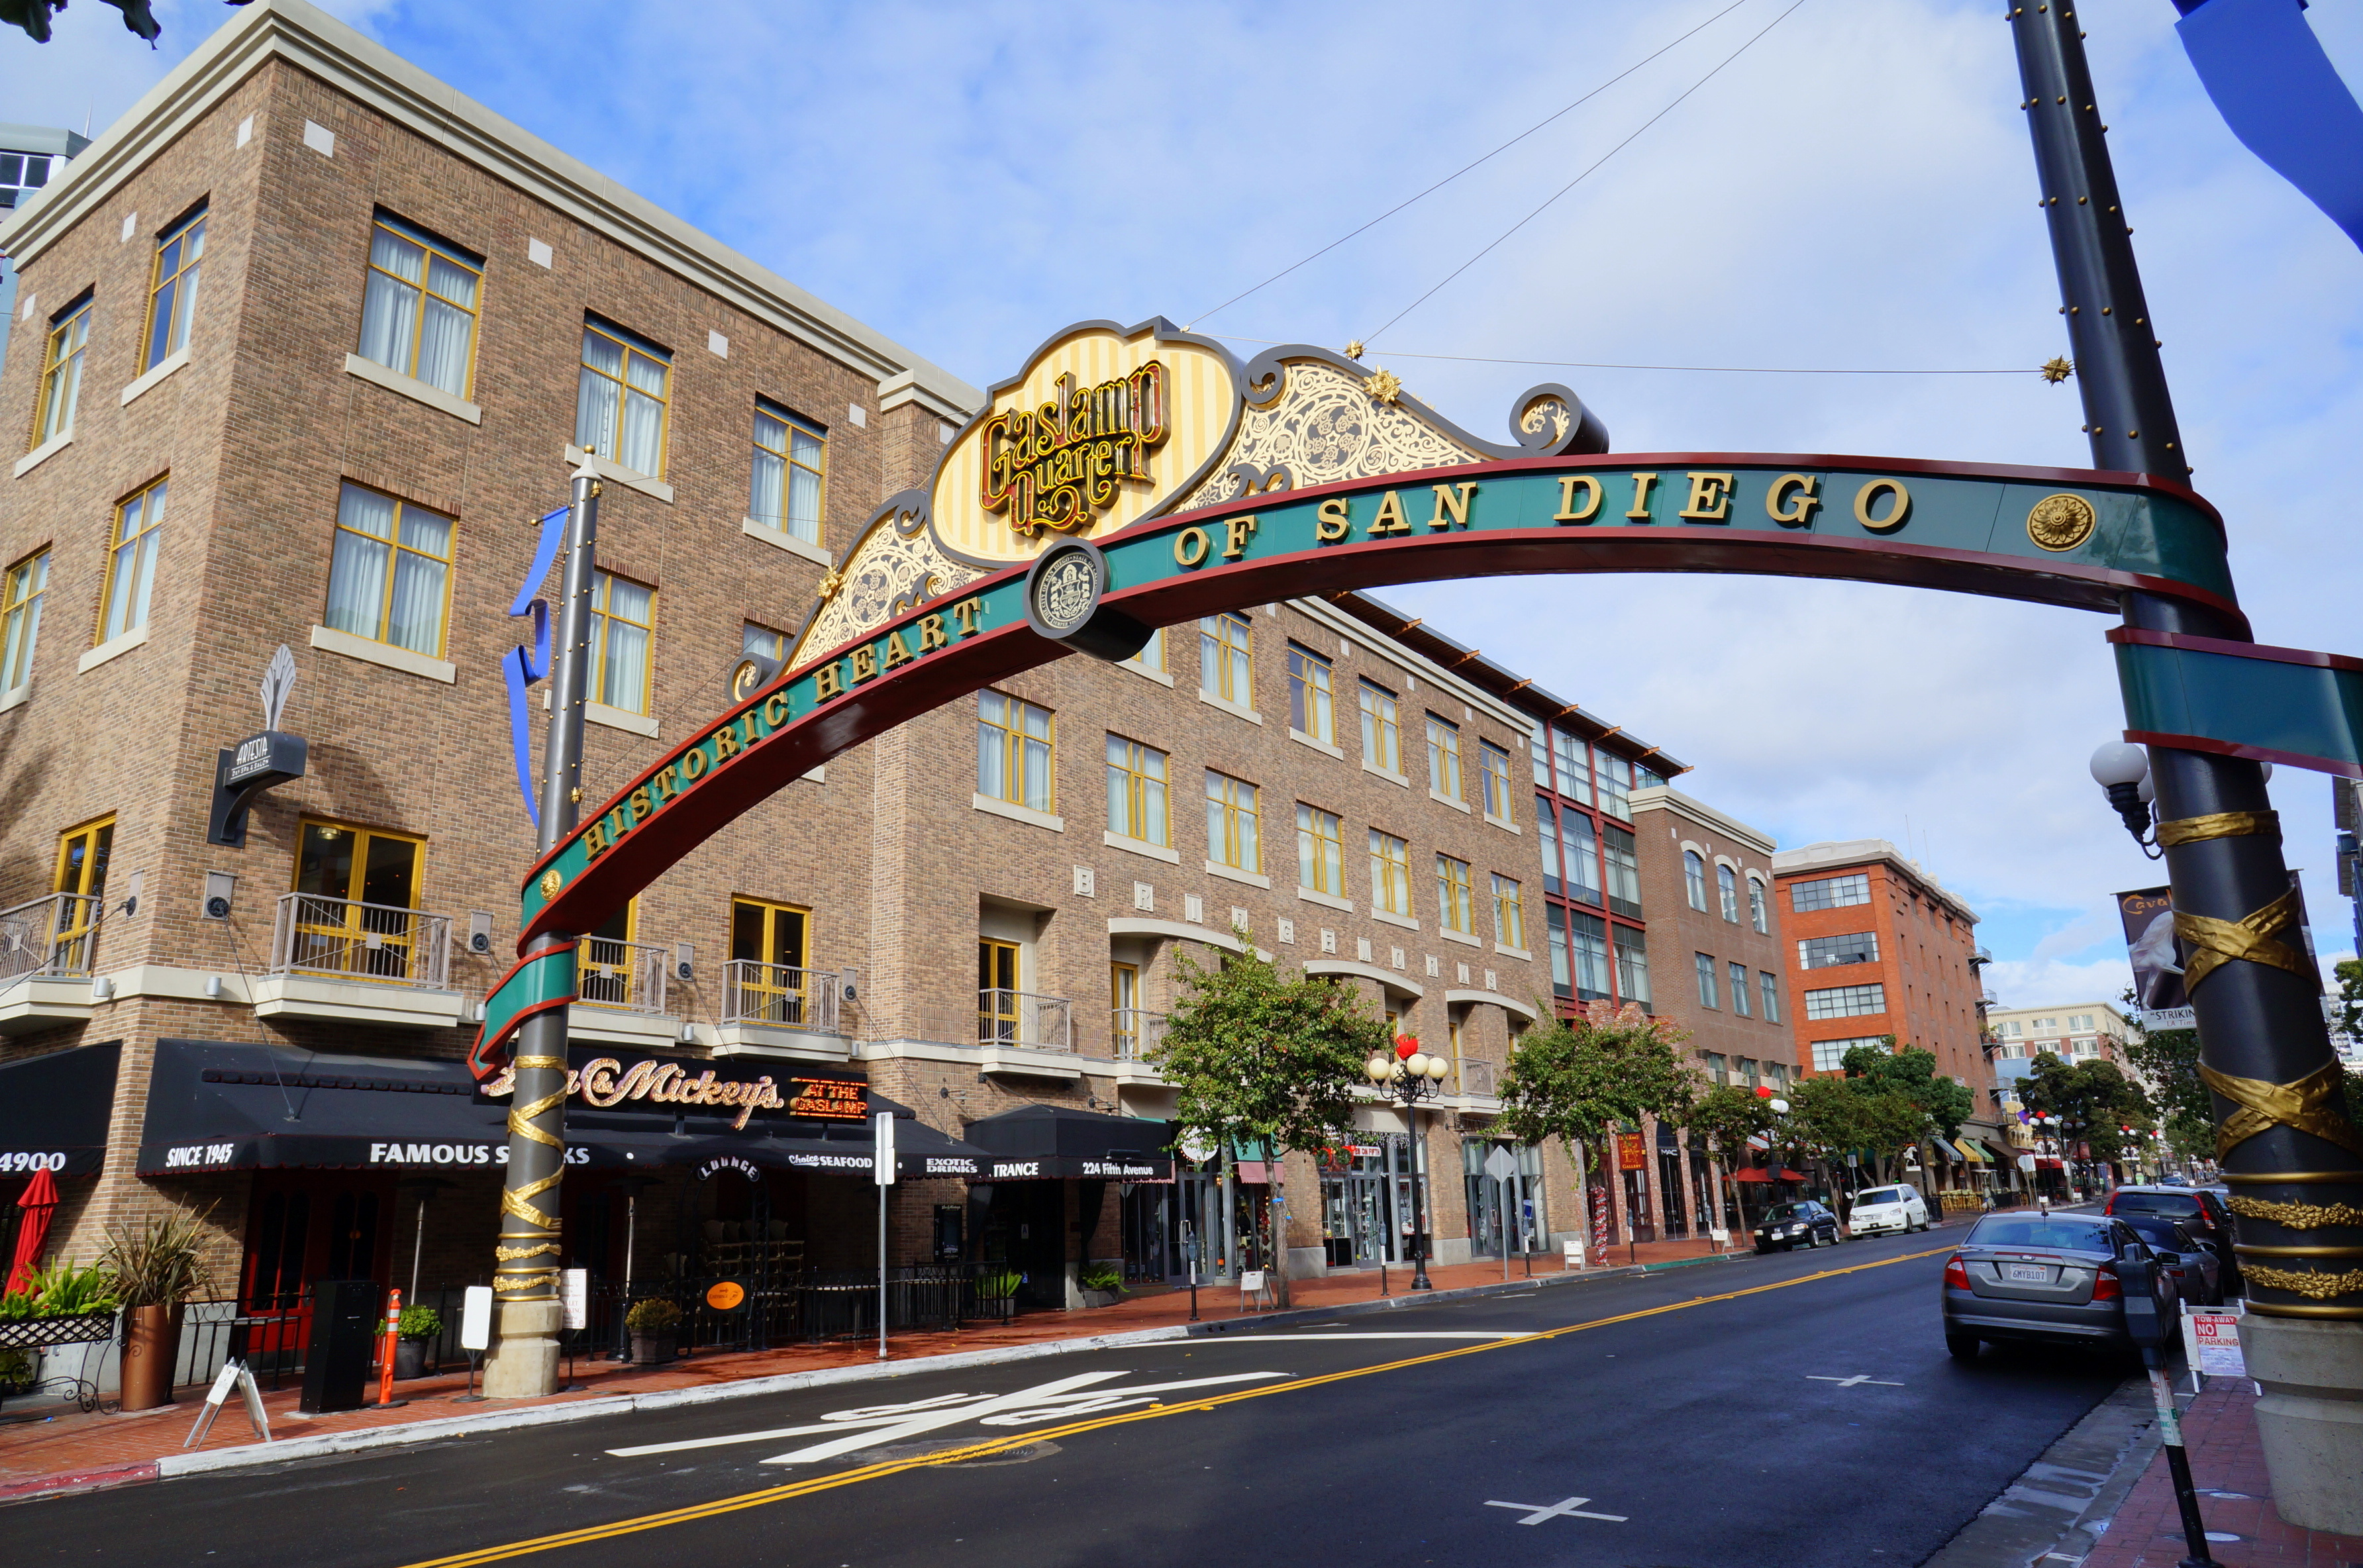 File:Gaslamp district (8280047218).jpg - Wikimedia Commons